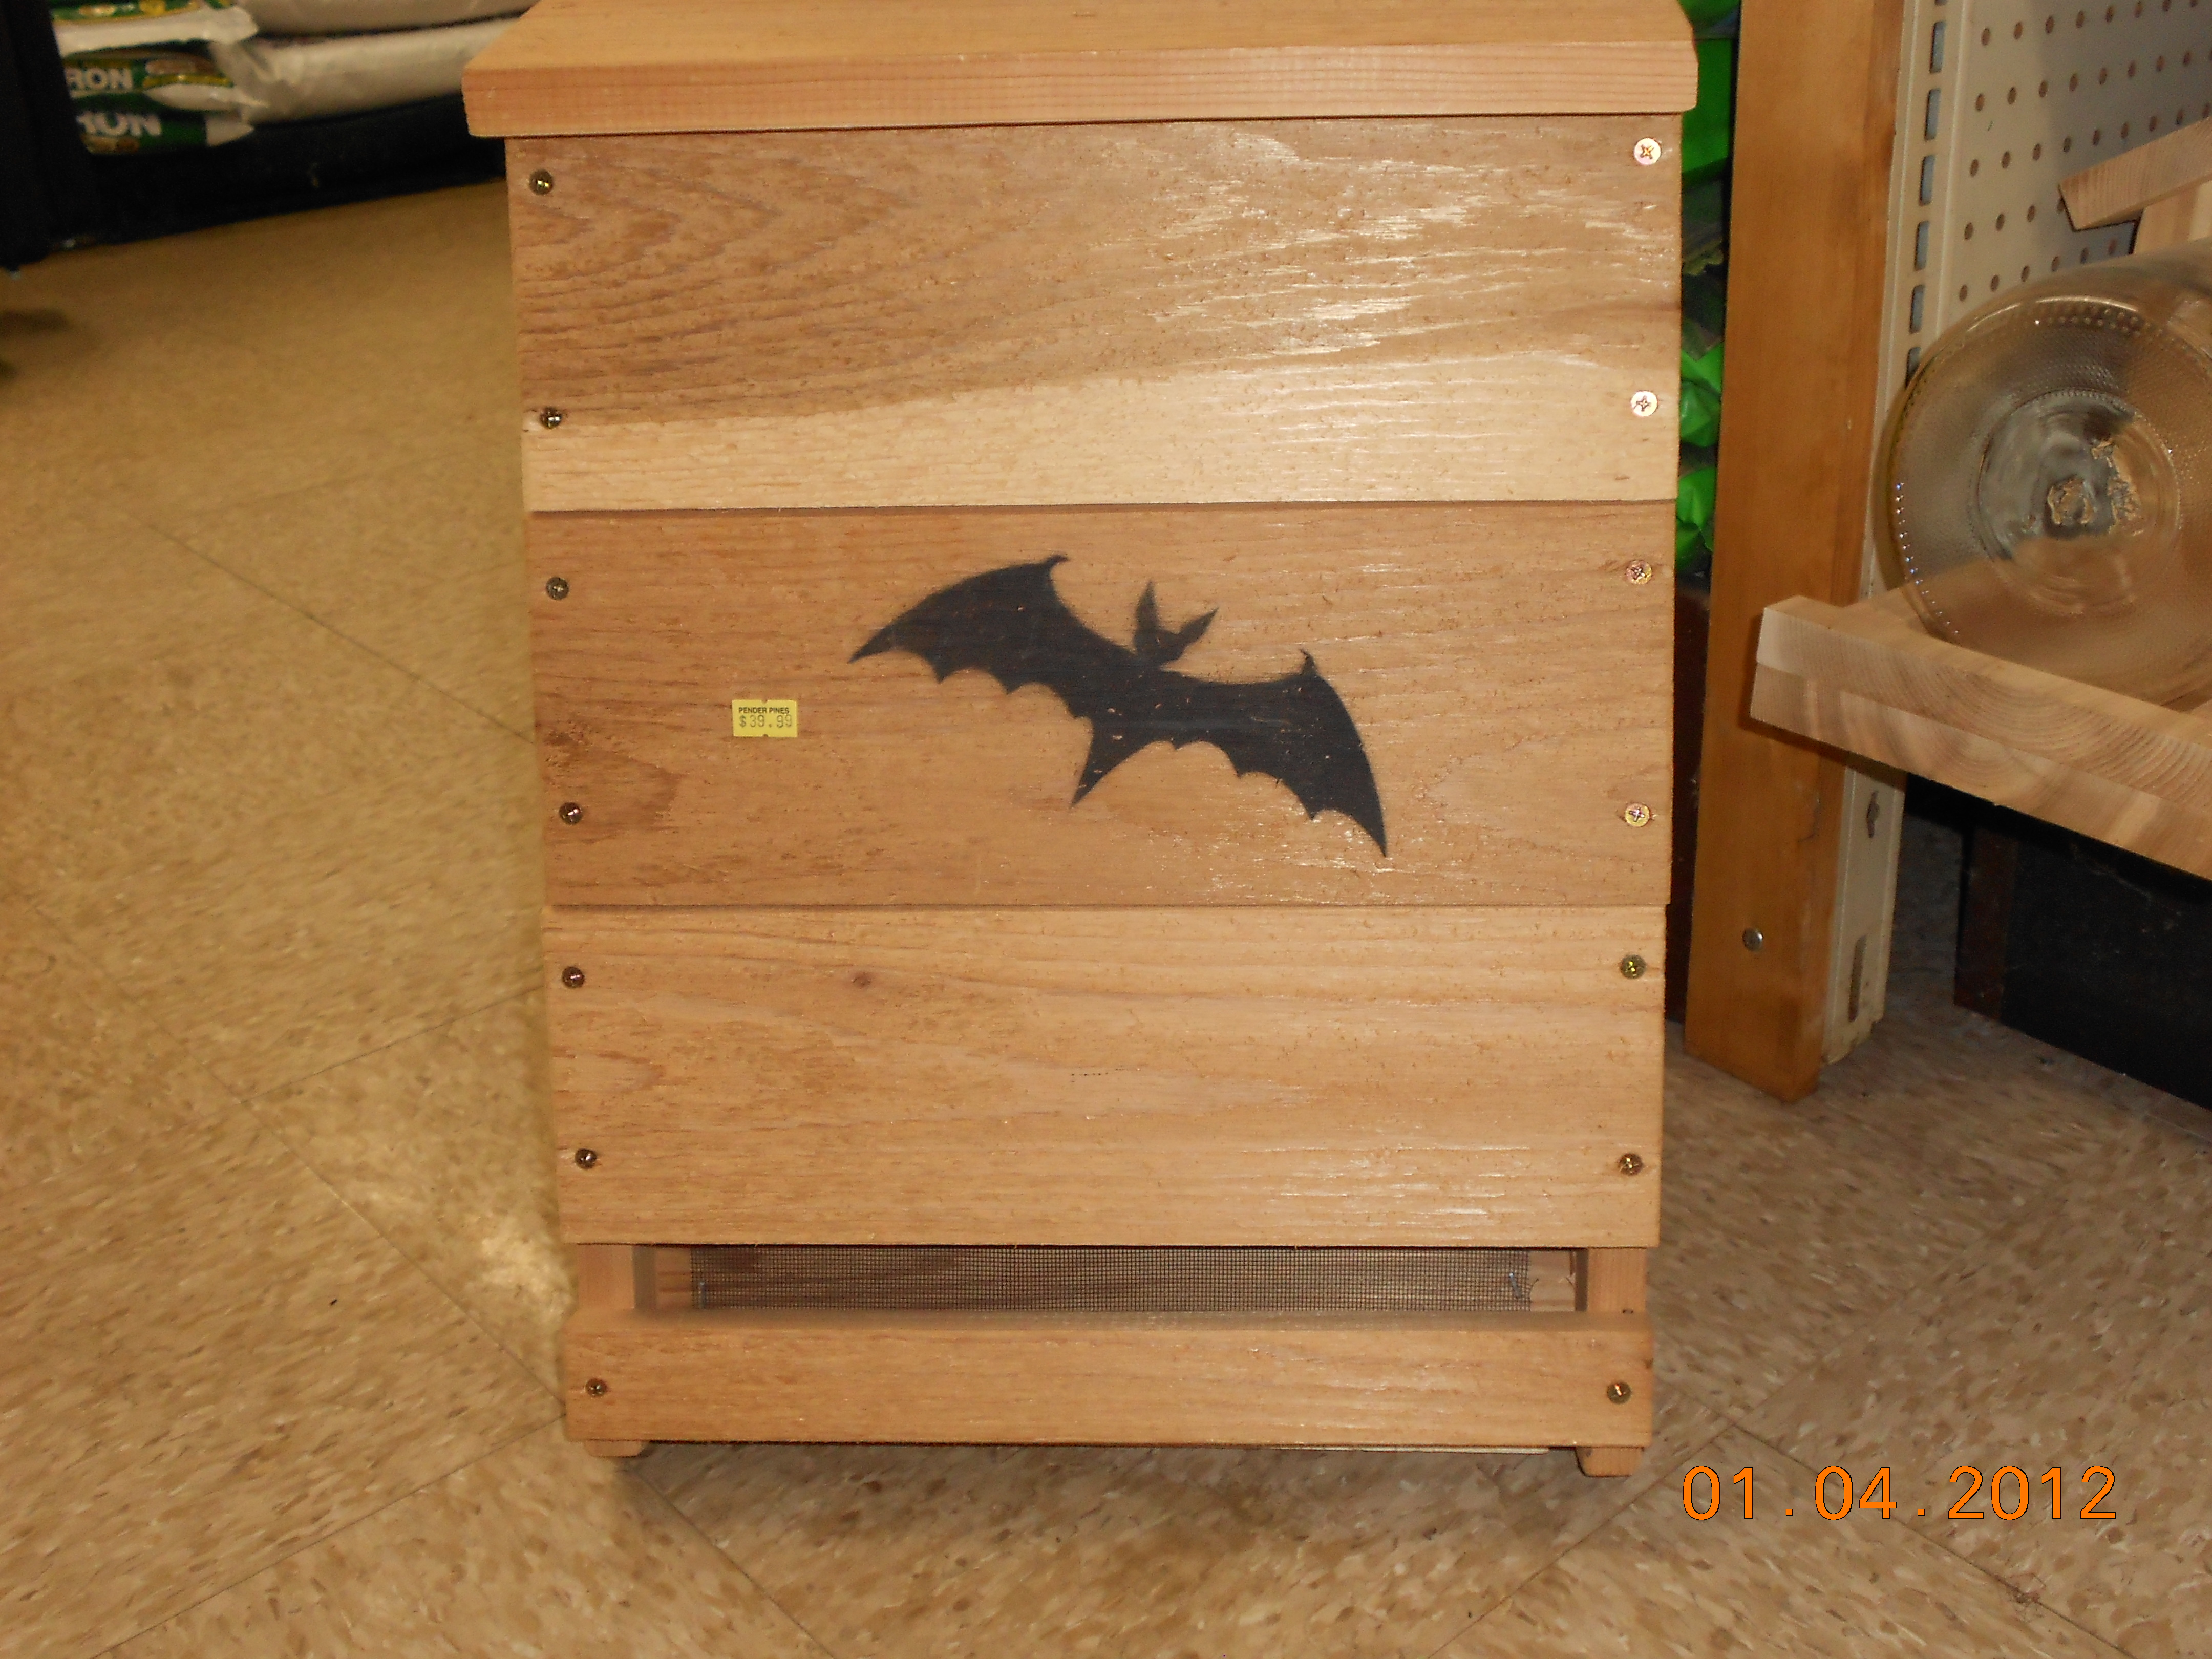 Building the perfect home for bats